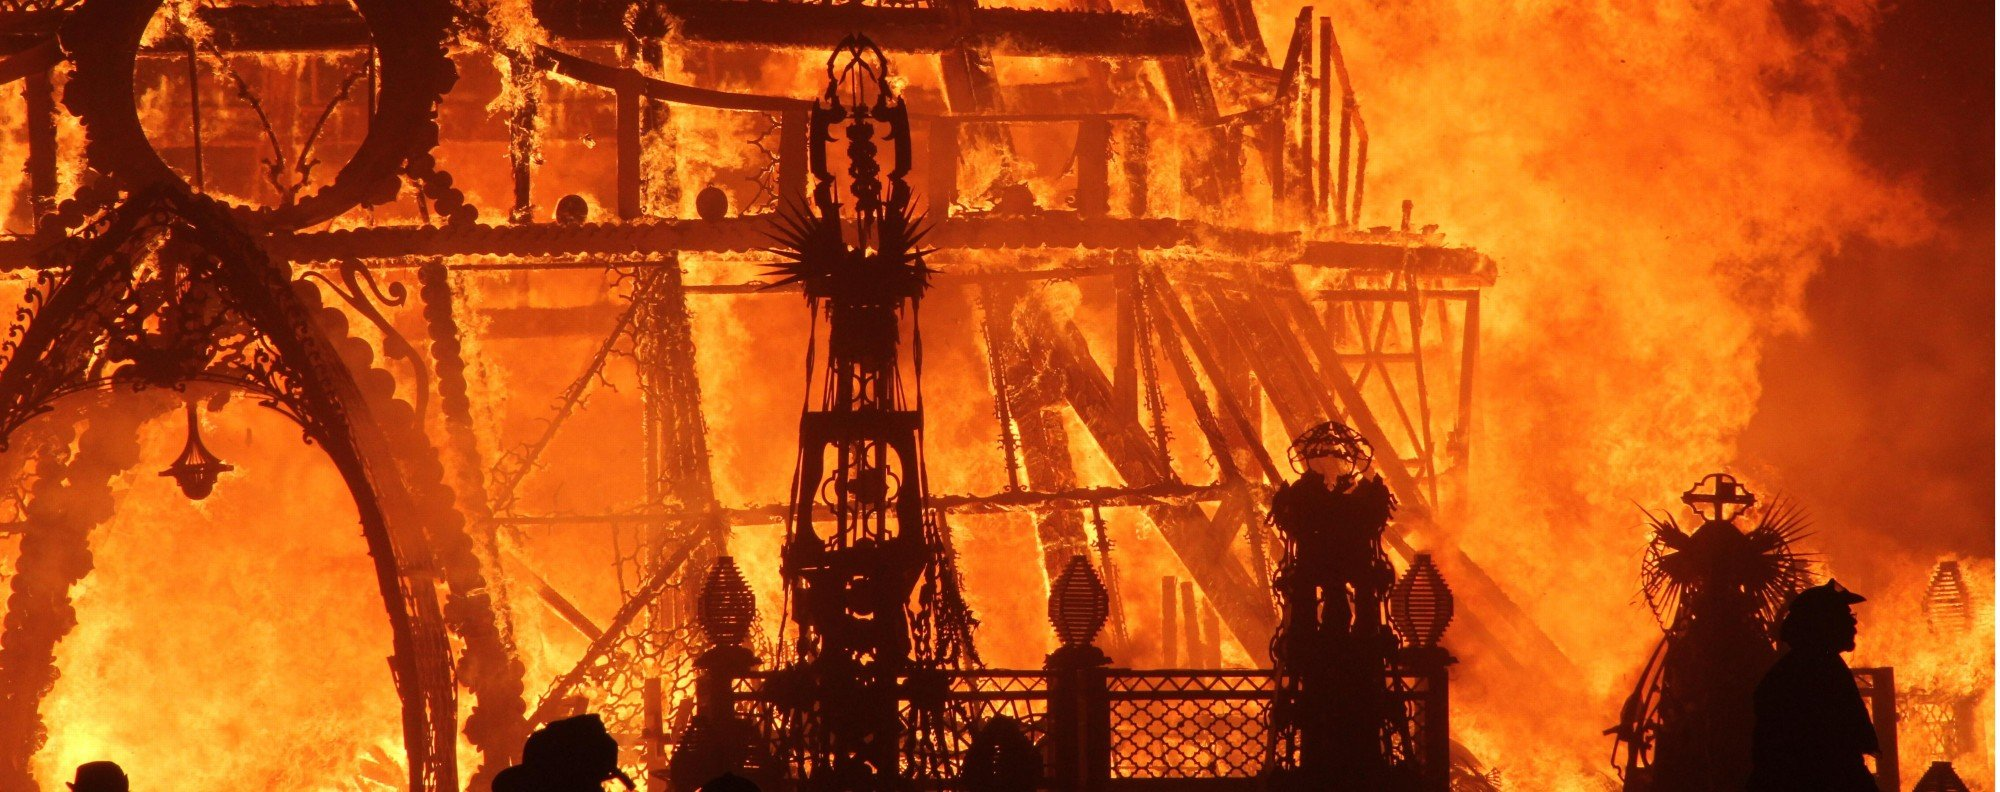 The Burning Man statue goes up in flames on the final night of the 2014 event.